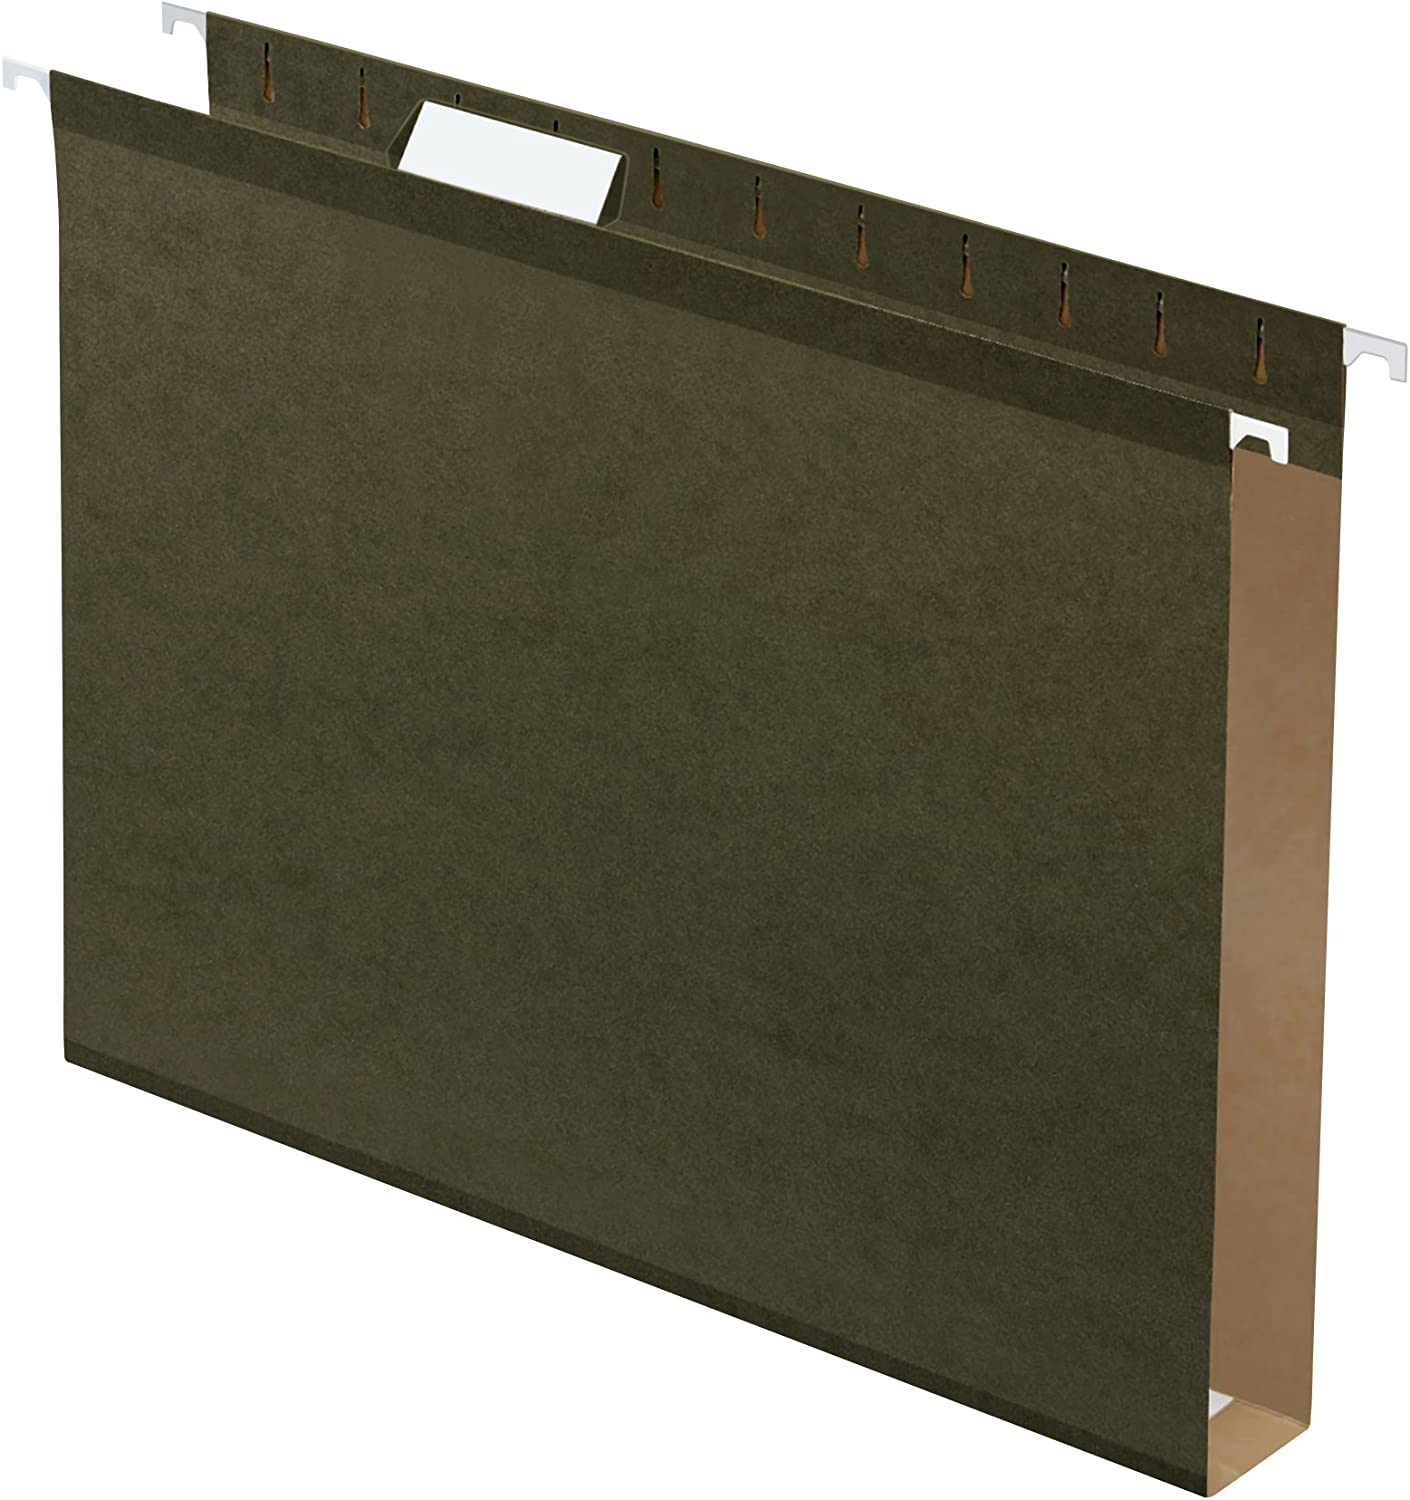 ventas al por mayor Hanging Hanging Hanging Folders, 1  Capacity, Letter, 25 BX, Standard verde, Sold as 1 Box  Venta barata